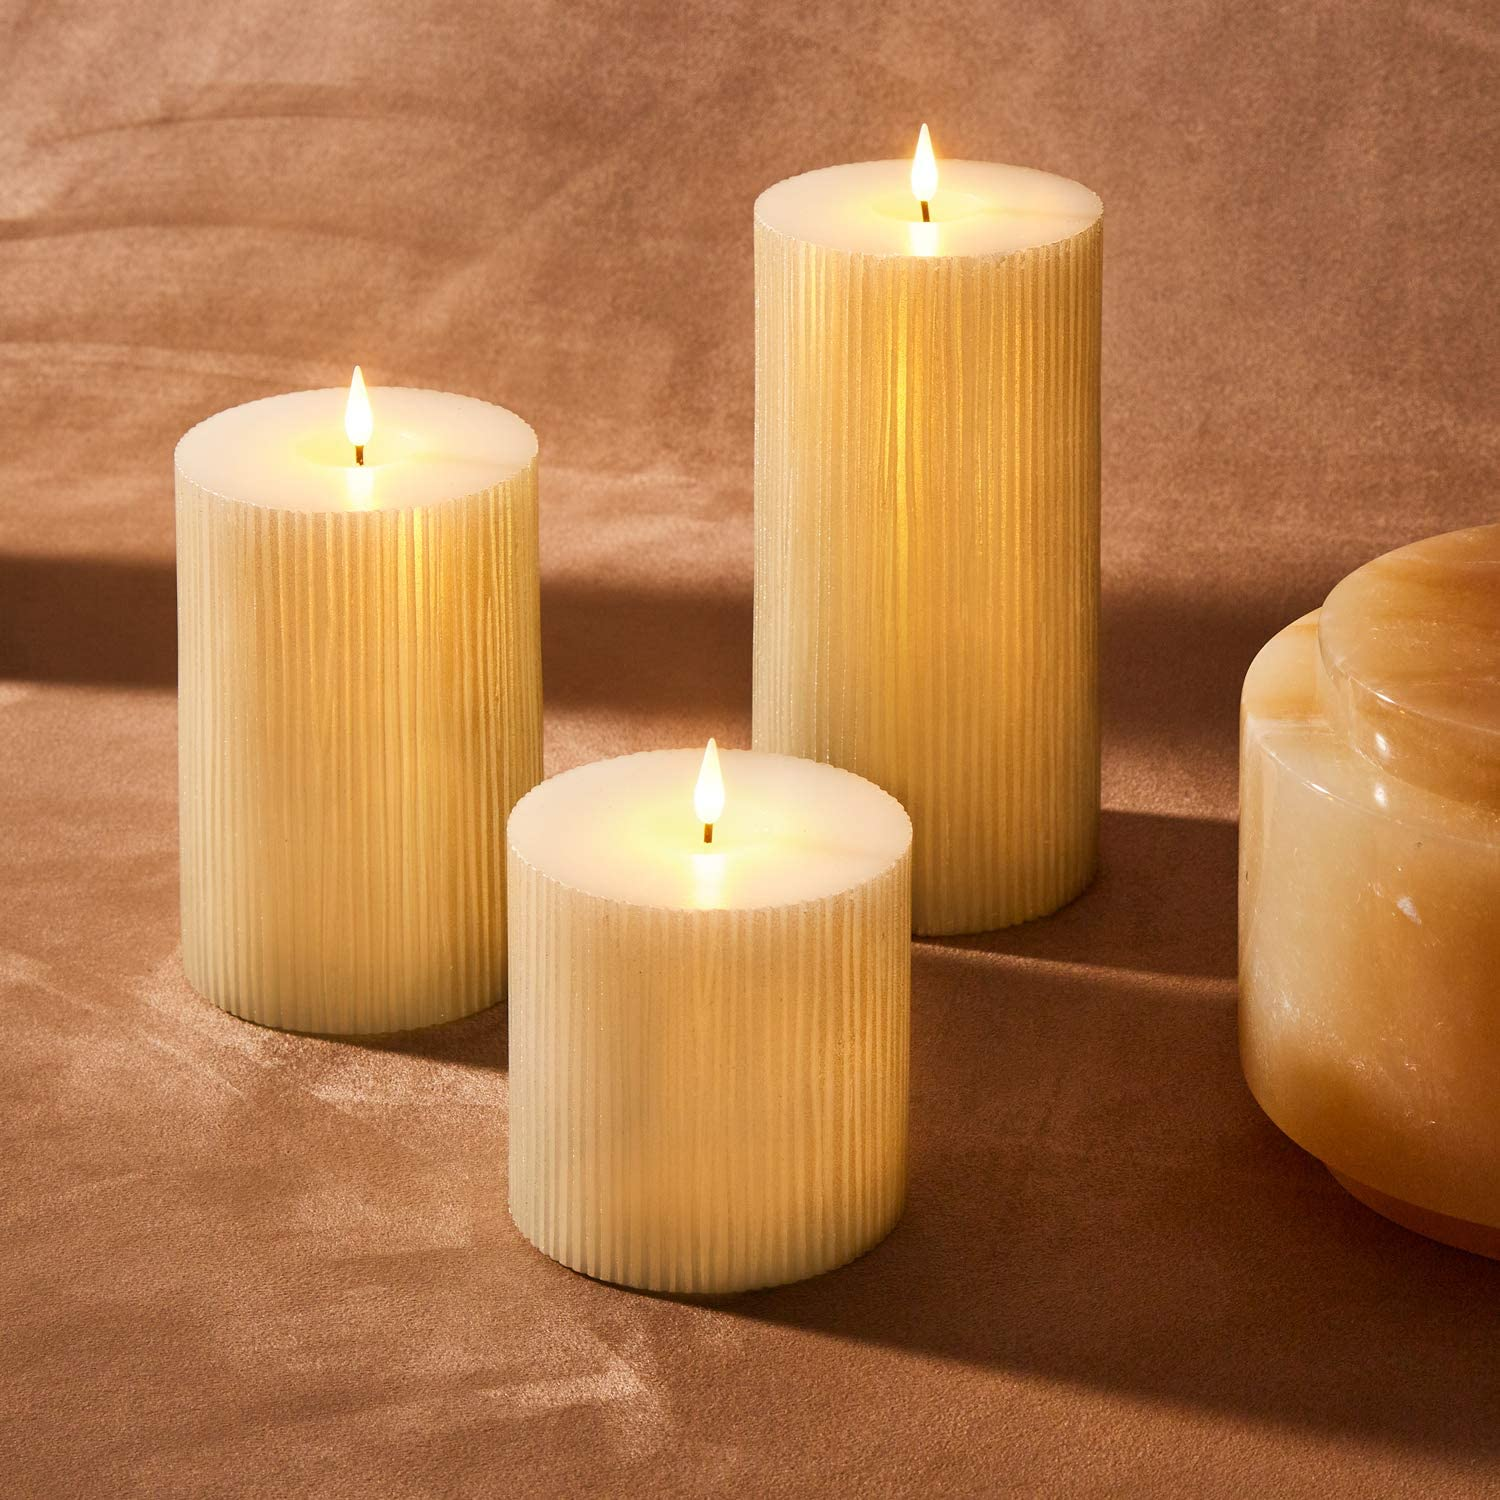 3d Flickering Flameless Candle Set 4 Diameter Large Pillar Candles Battery Powered Shimmering Gold Wax Realistic Flame Mother S Day Gift Spring Decor Remote Control Timer Included Set Of 3